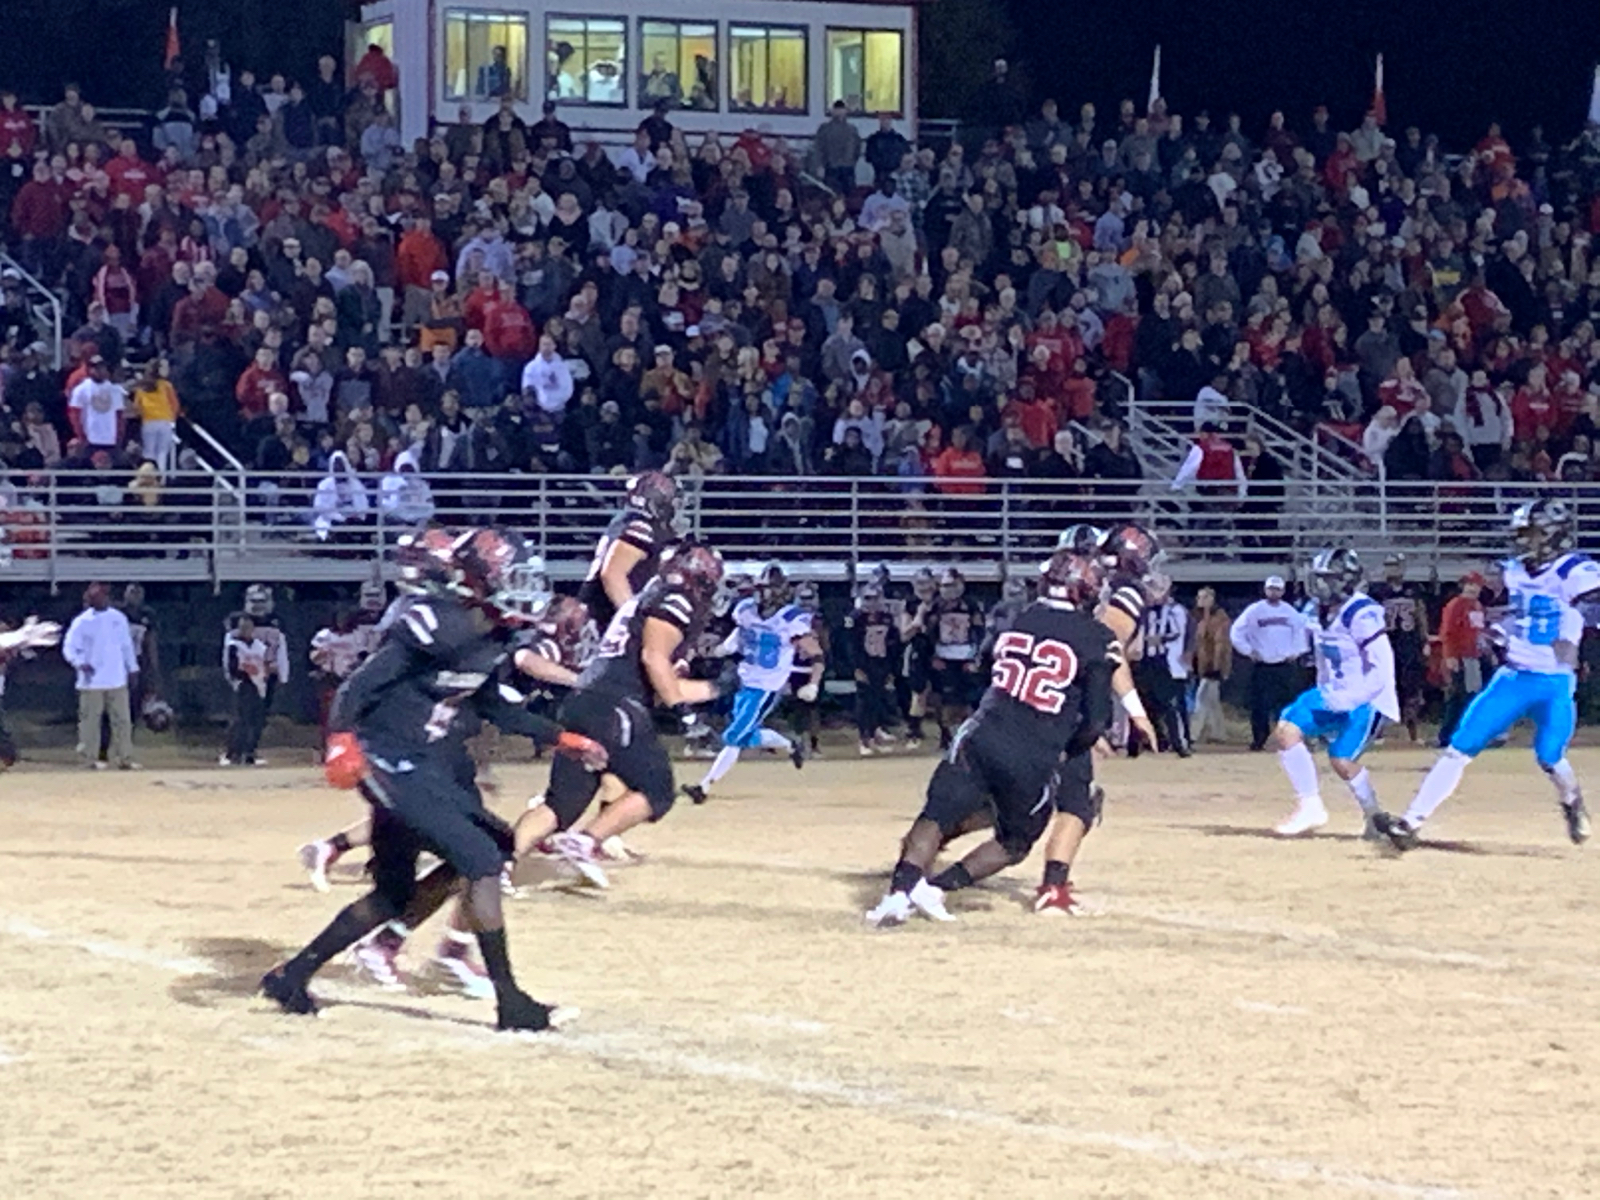 Football Is Down 9-21 v Barnwell at Halftime